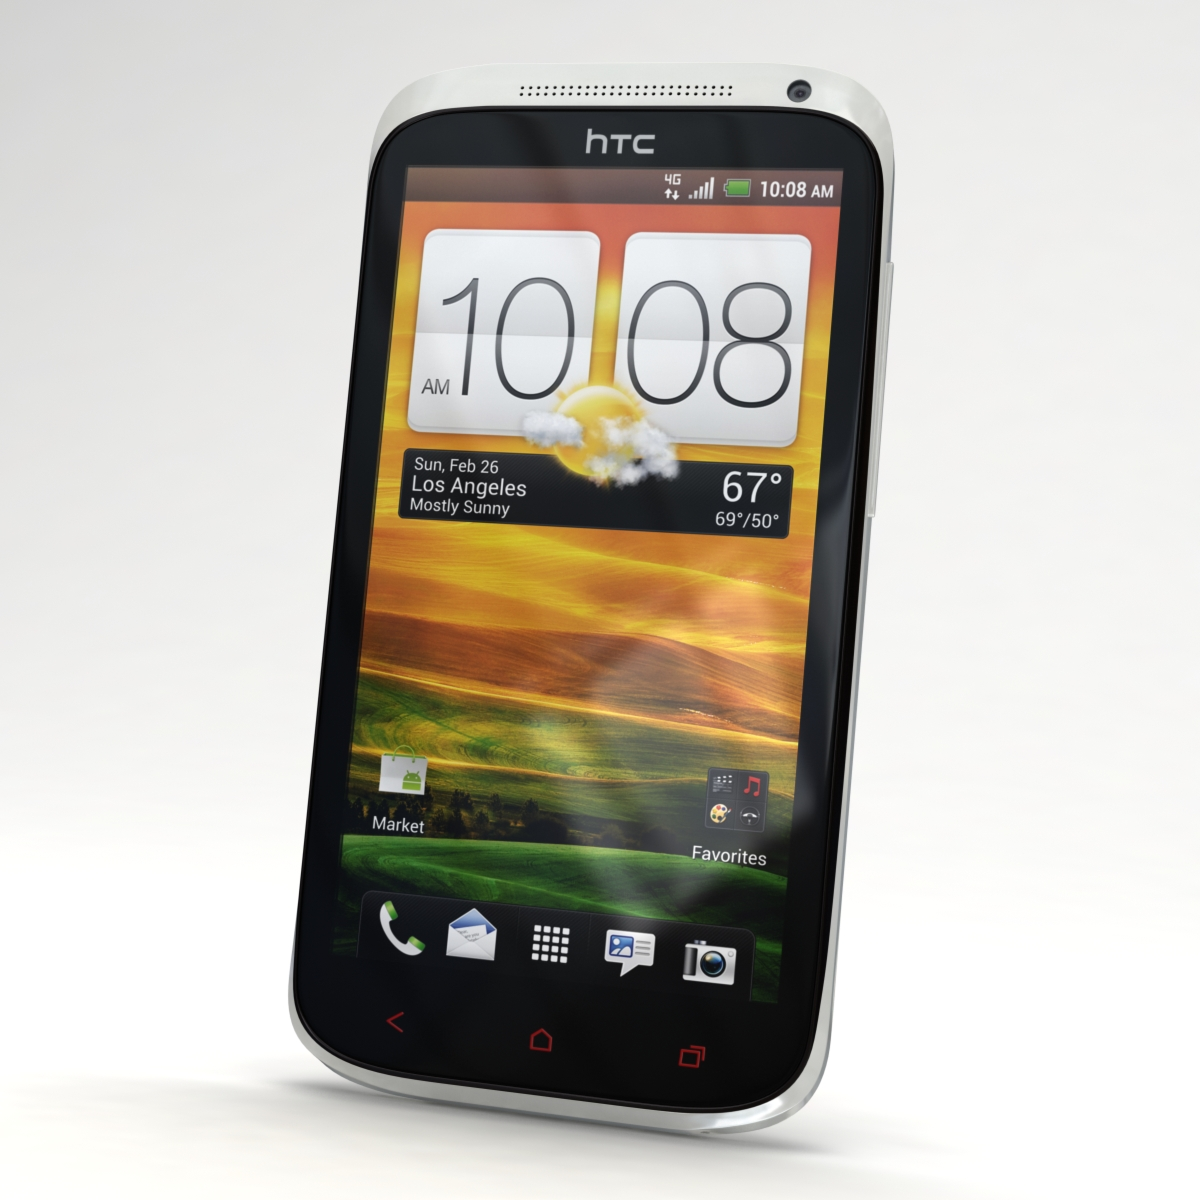 htc one x+ black and white 3d model 3ds max fbx c4d lwo obj 151459